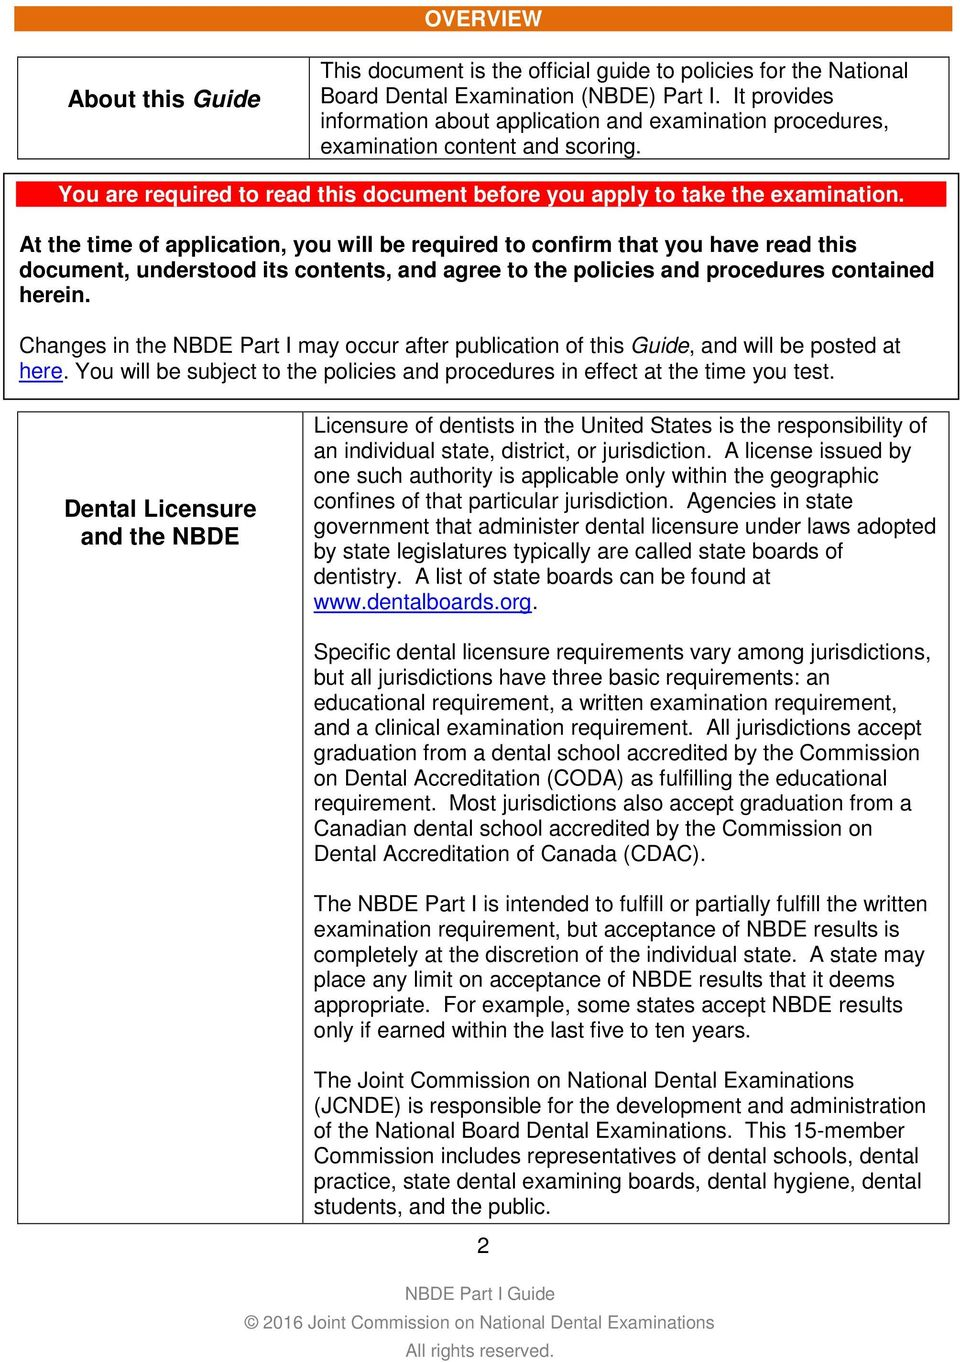 National Board Dental Examination, Part I 2016 Guide - PDF